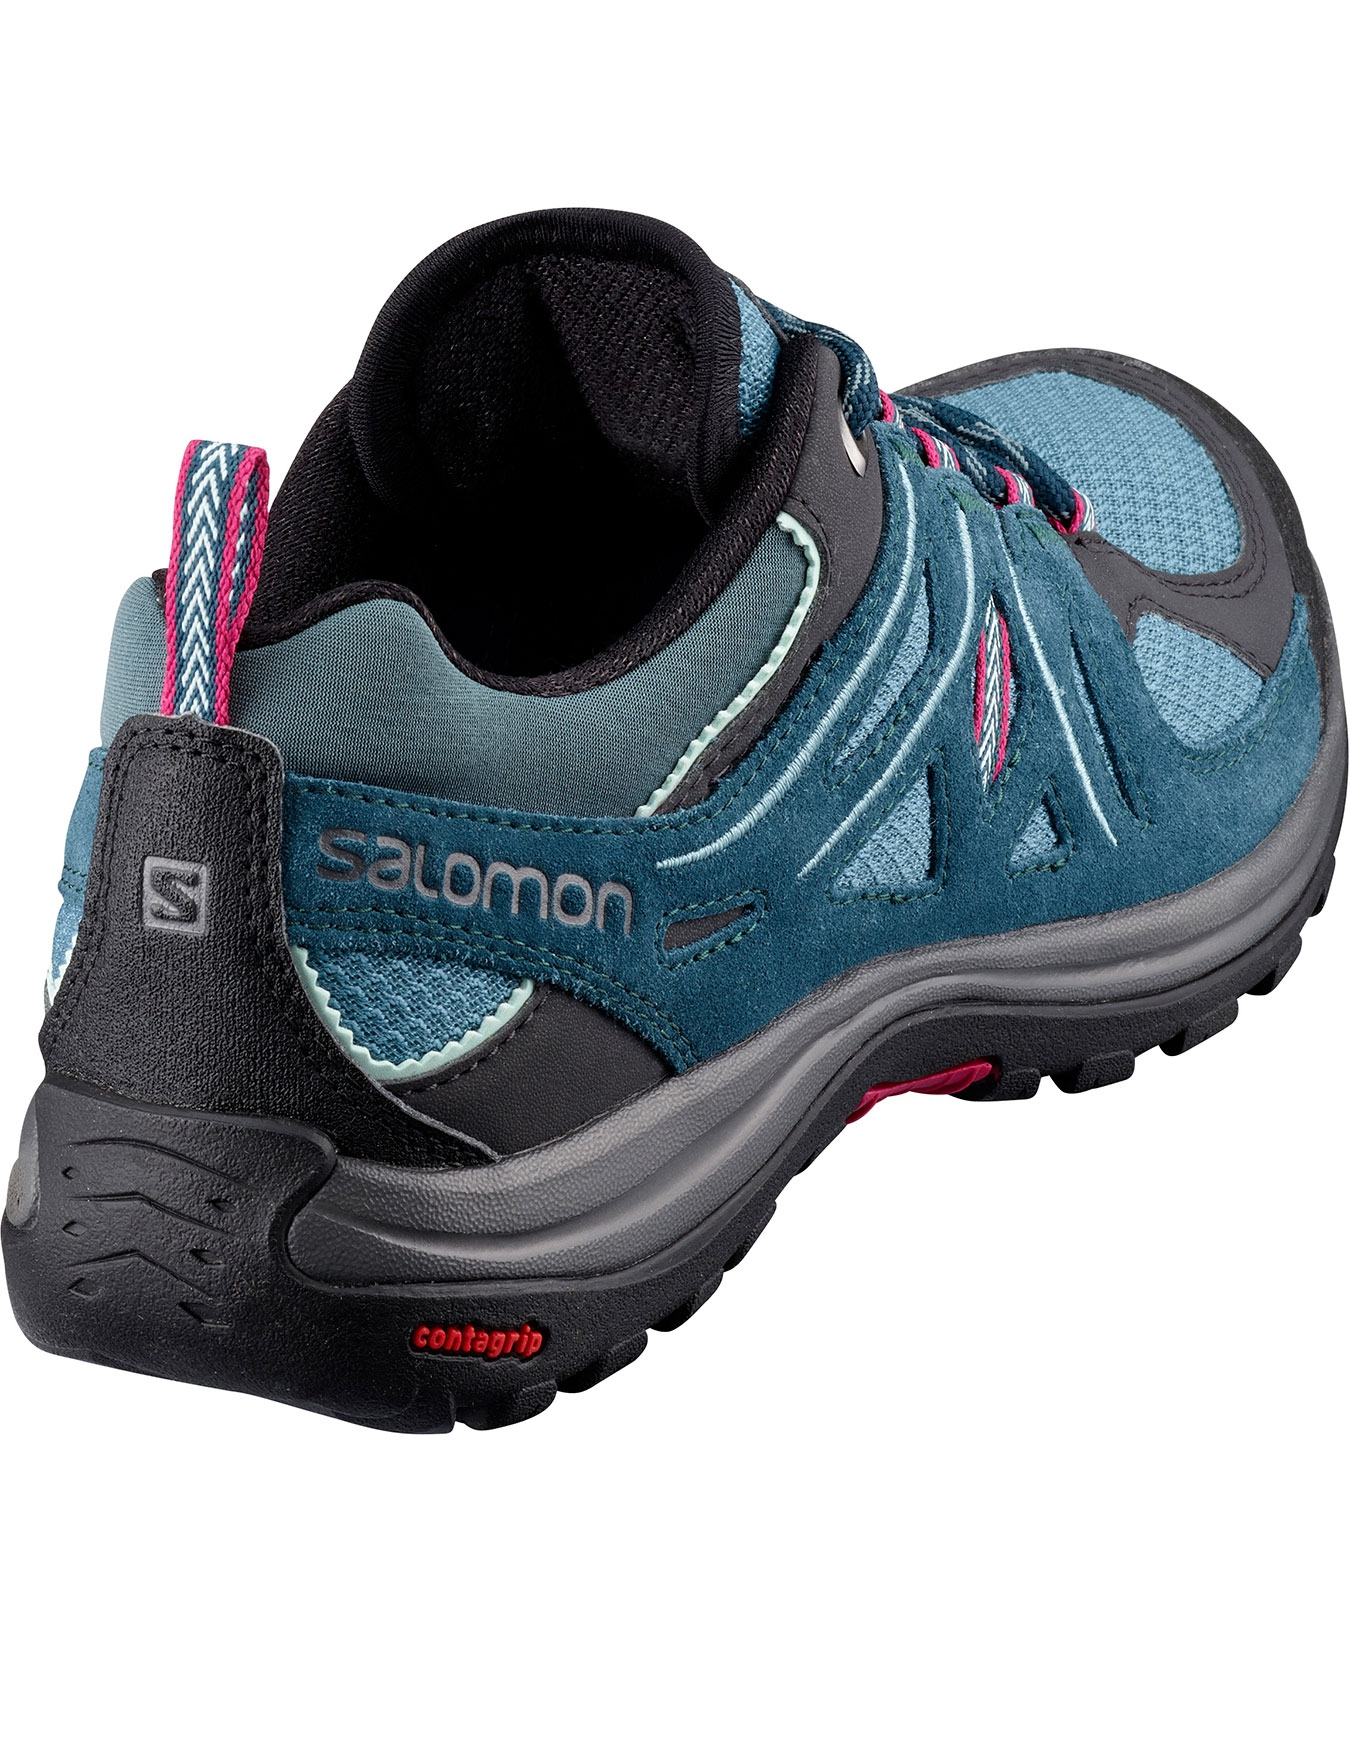 59d41e5047a Ellipse 2 Aero W Artic reflecting Salomon   Chaussures randonnée ...